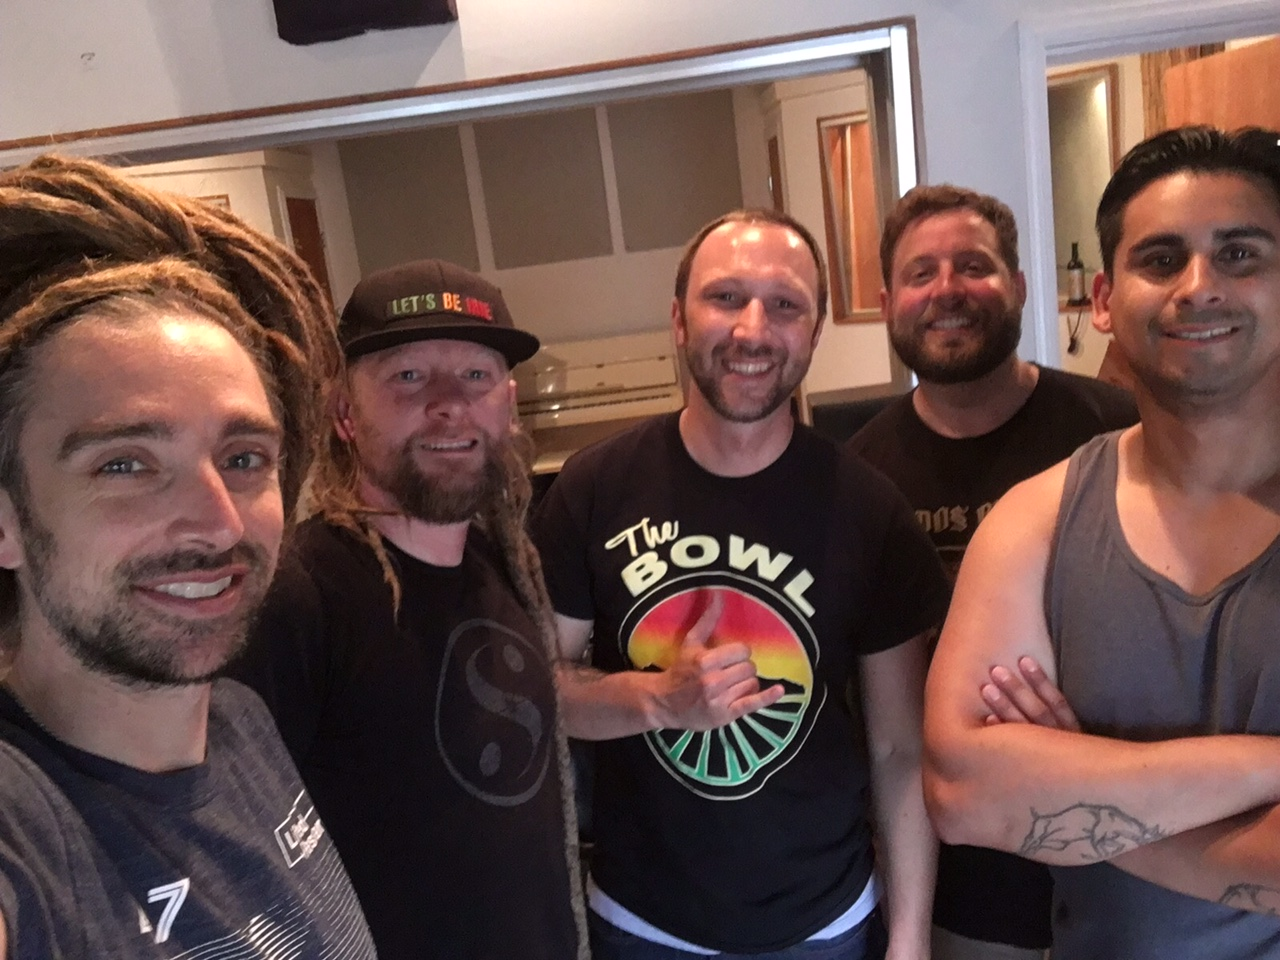 - Rise Up just completed a studio session with EN Young at Imperial Sound Studios/Roots Musician Records at the end of June 2019. New music and videos to come soon!